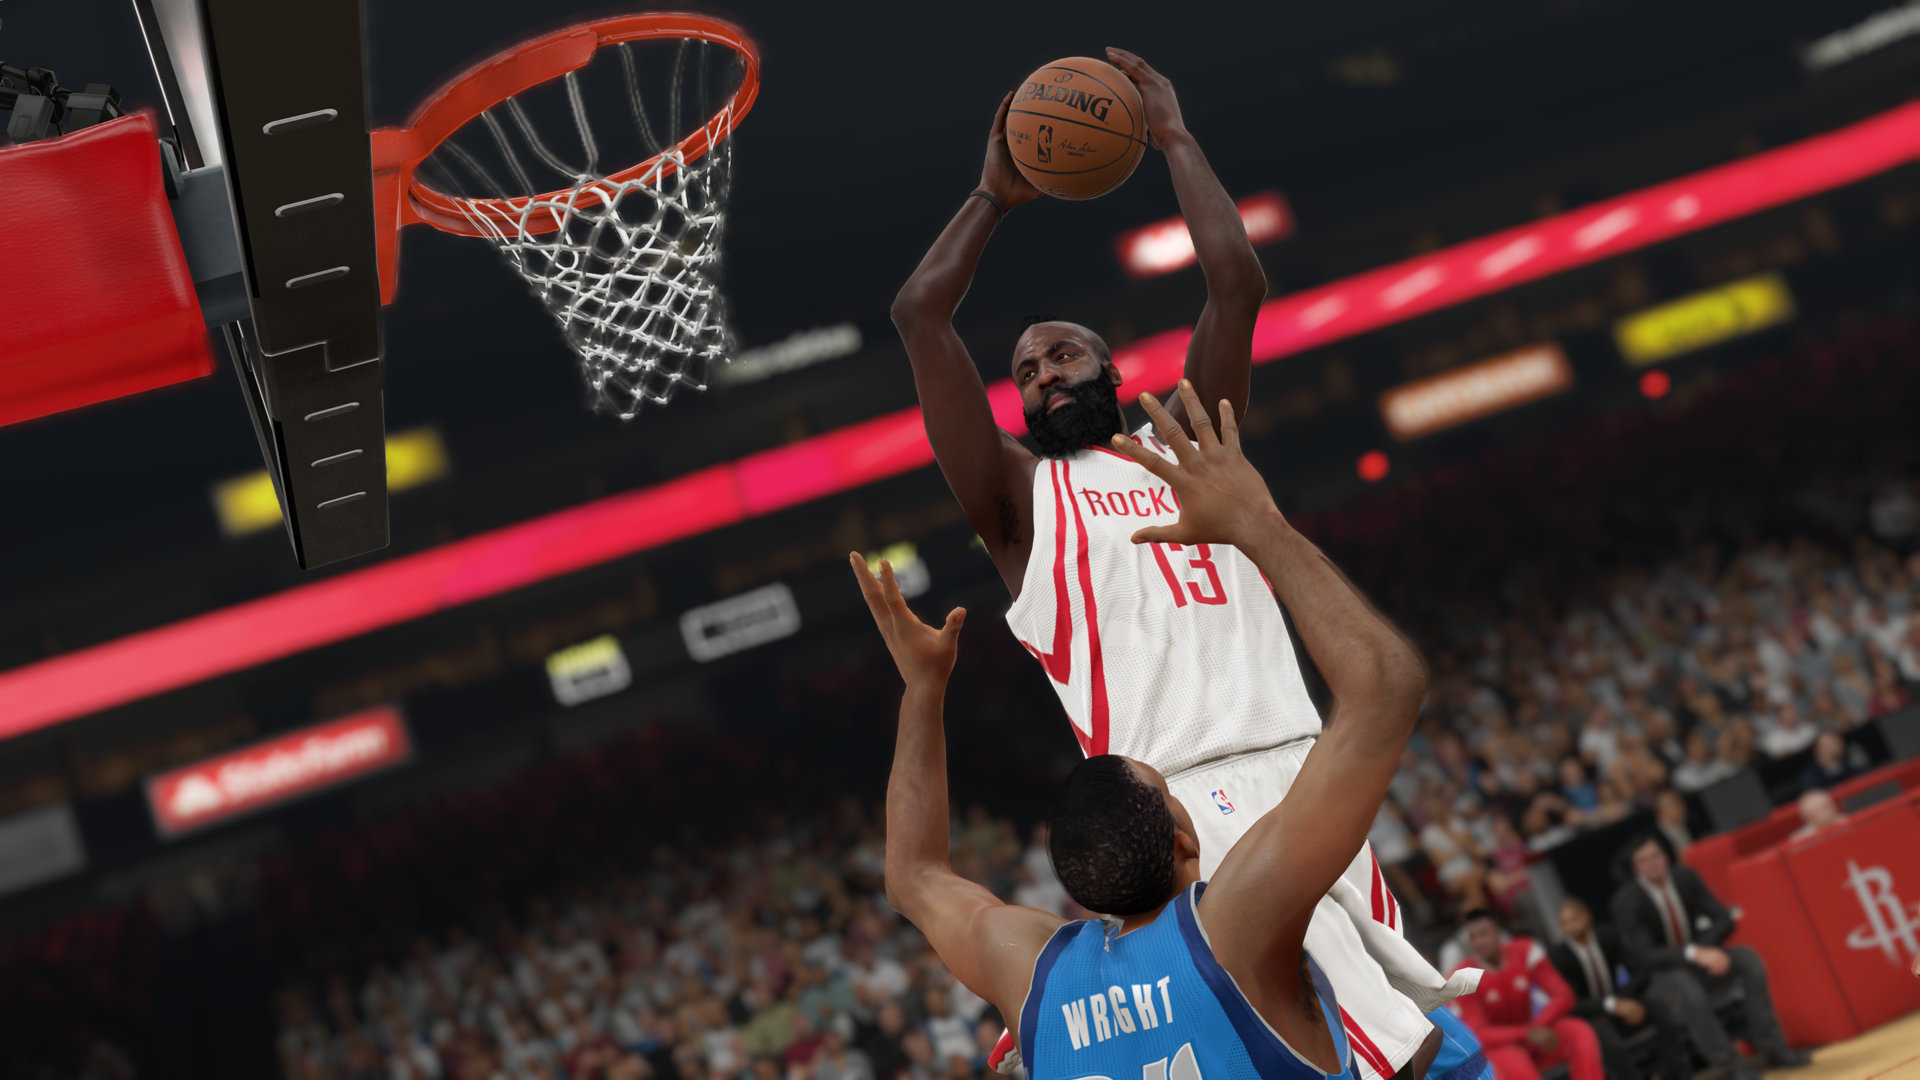 NBA 2K15 screen cap